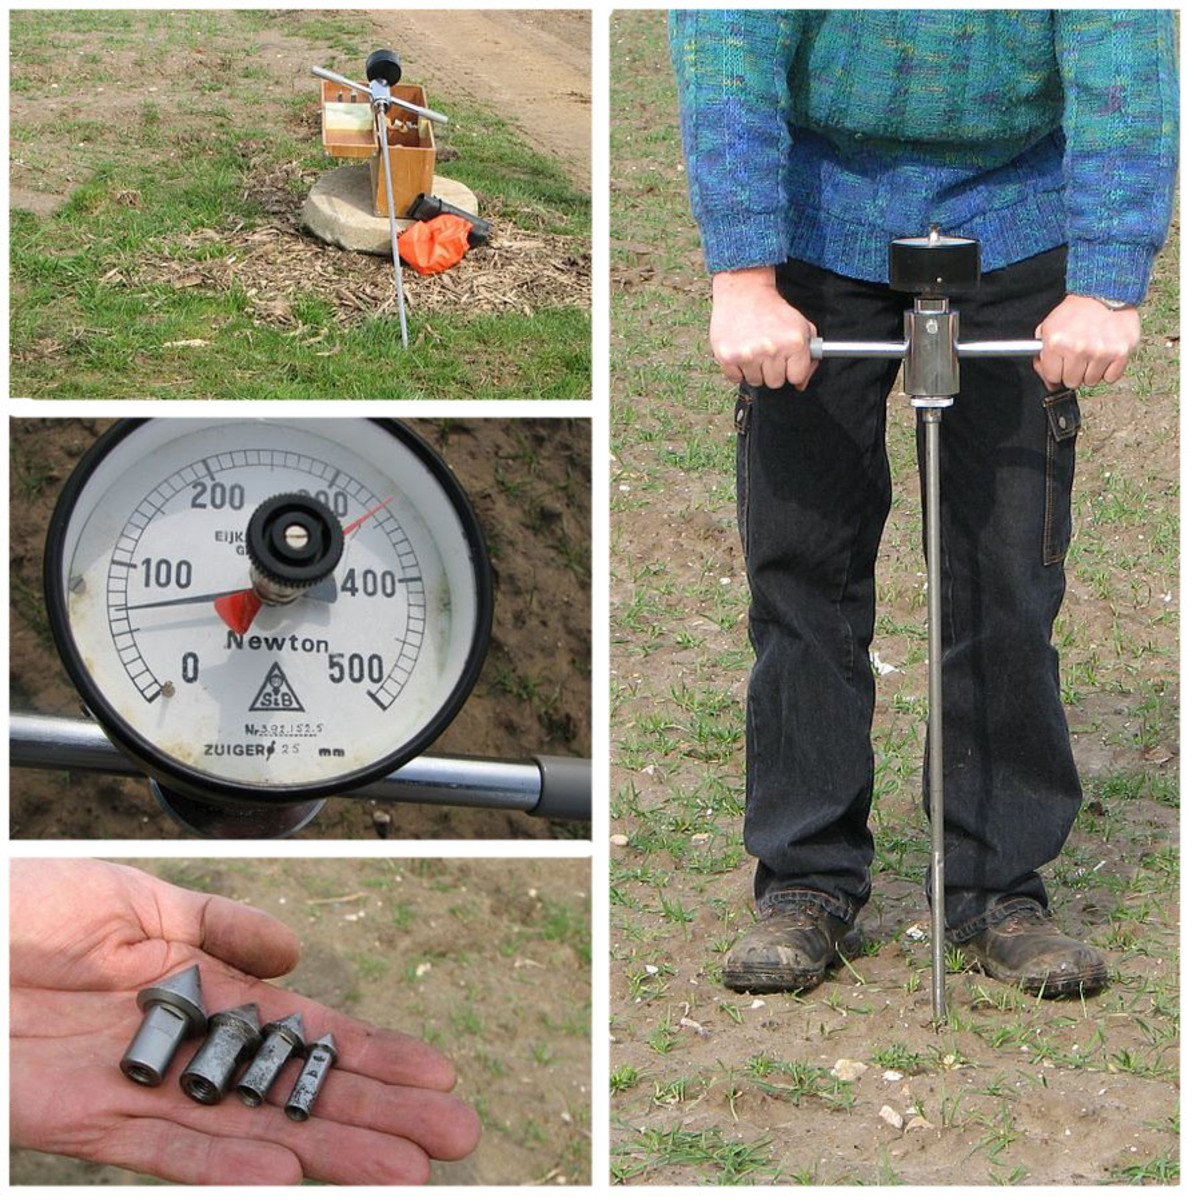 Testing soil compaction with a soil penetrometer.